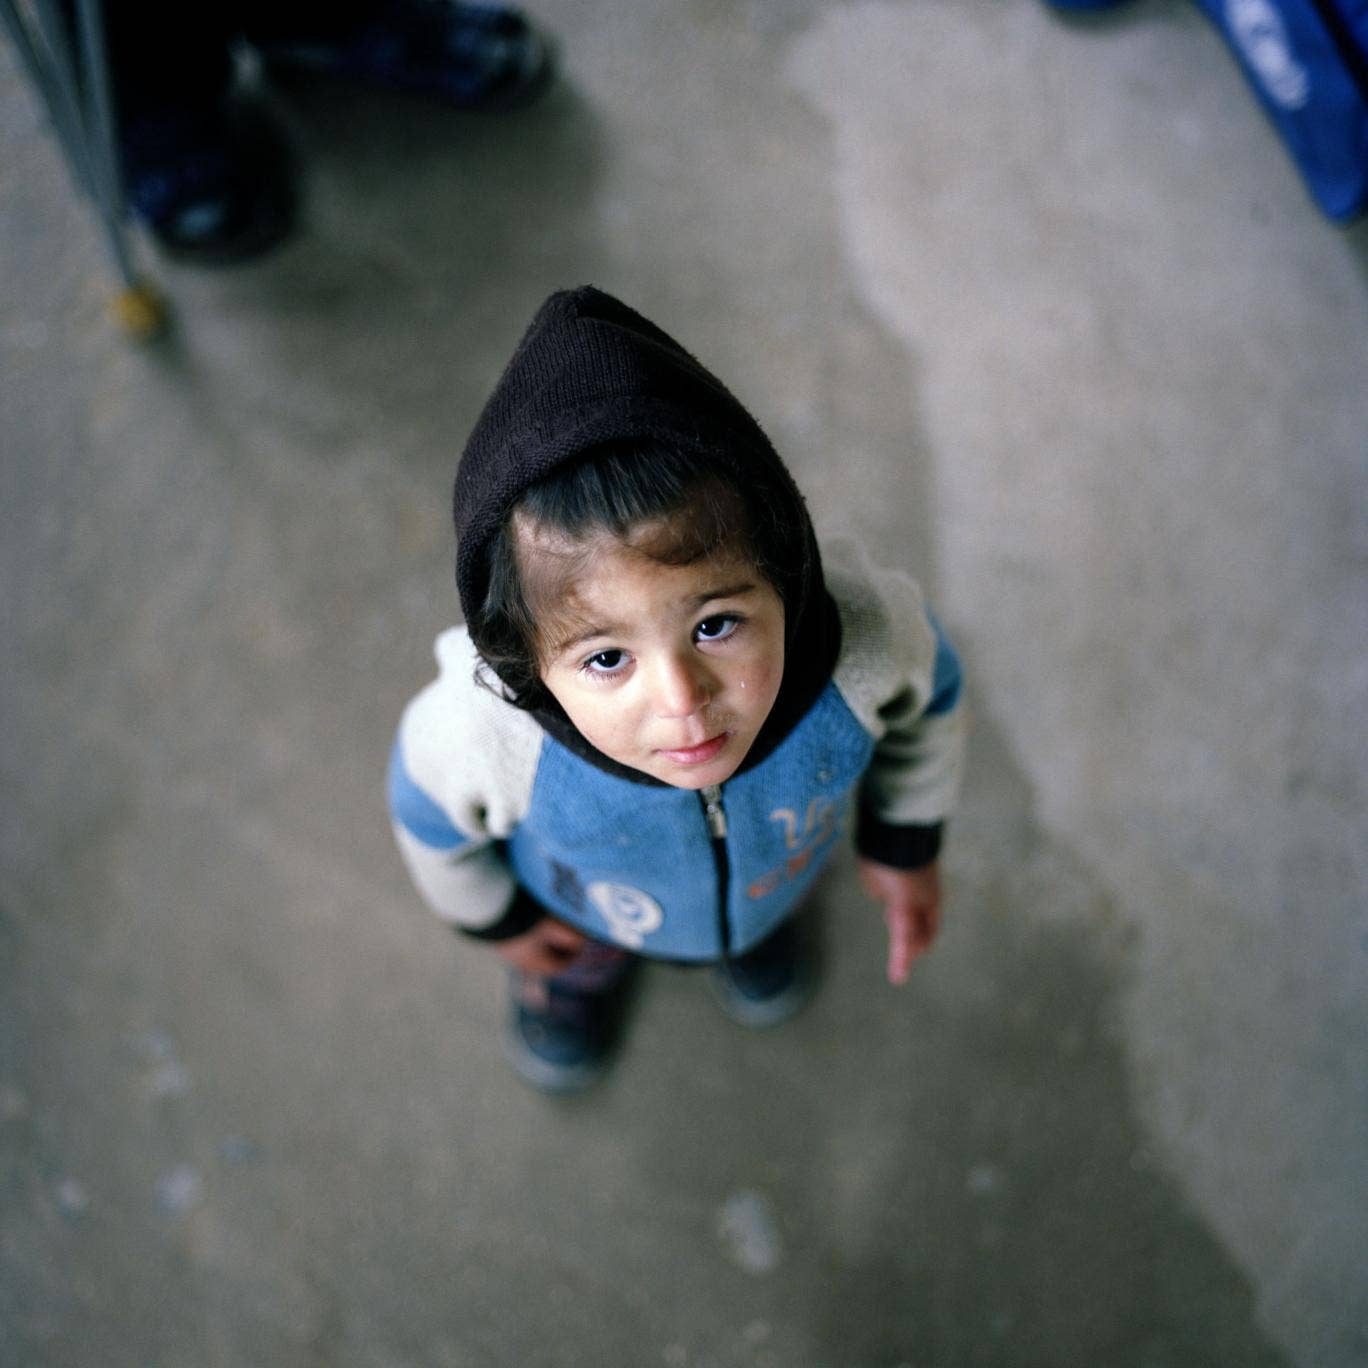 This little girl's family managed to escape Homs and found sanctuary in a mosque in Chhim